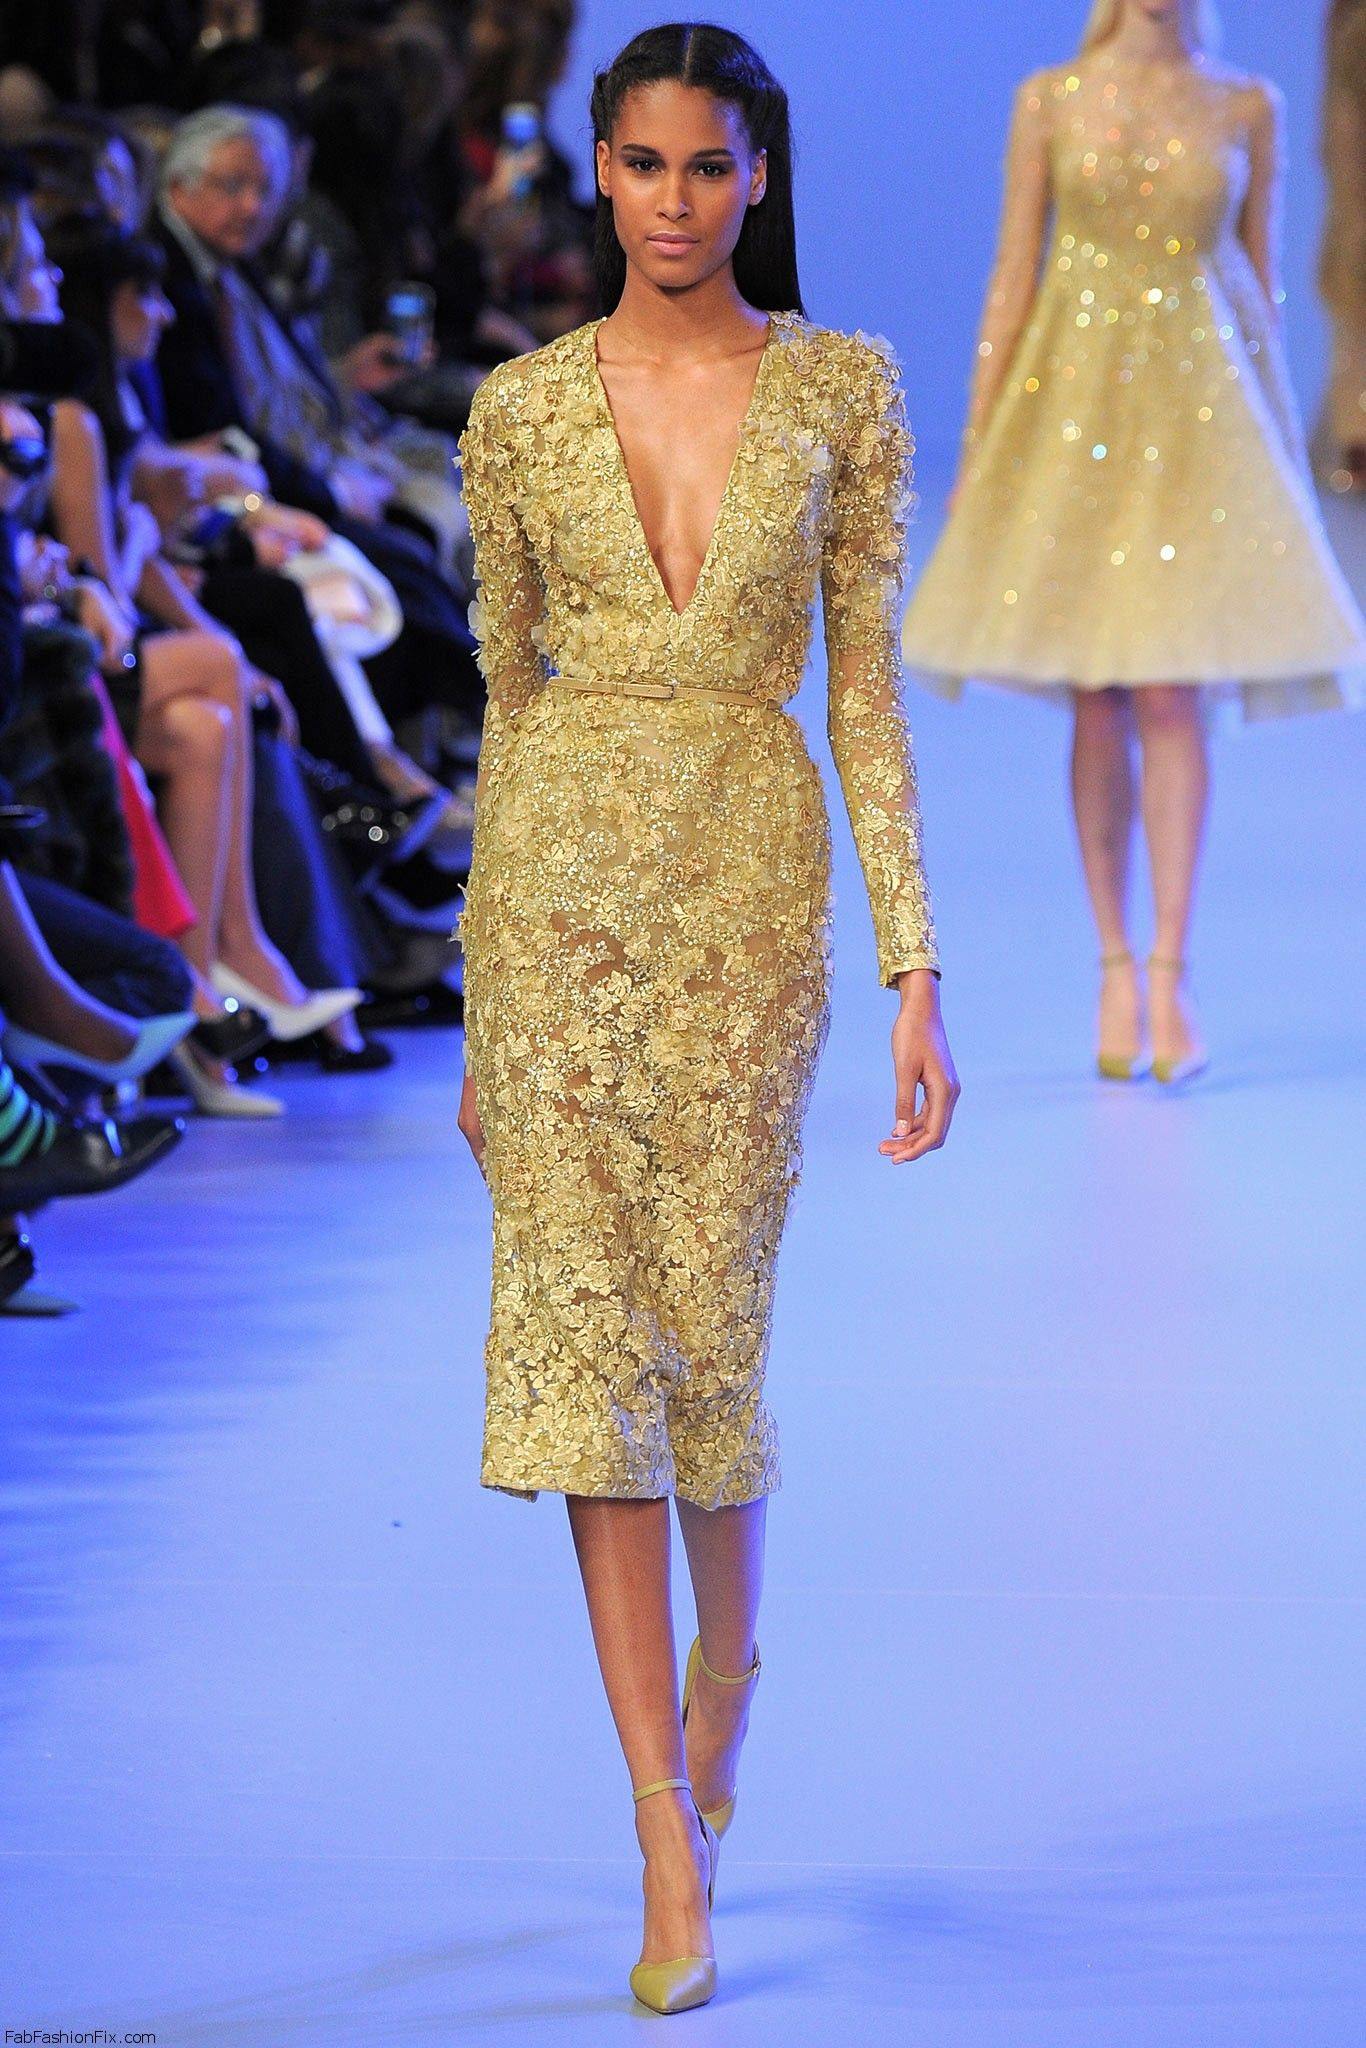 Elie Saab Haute Couture spring 2014 collection | Fab Fashion Fix